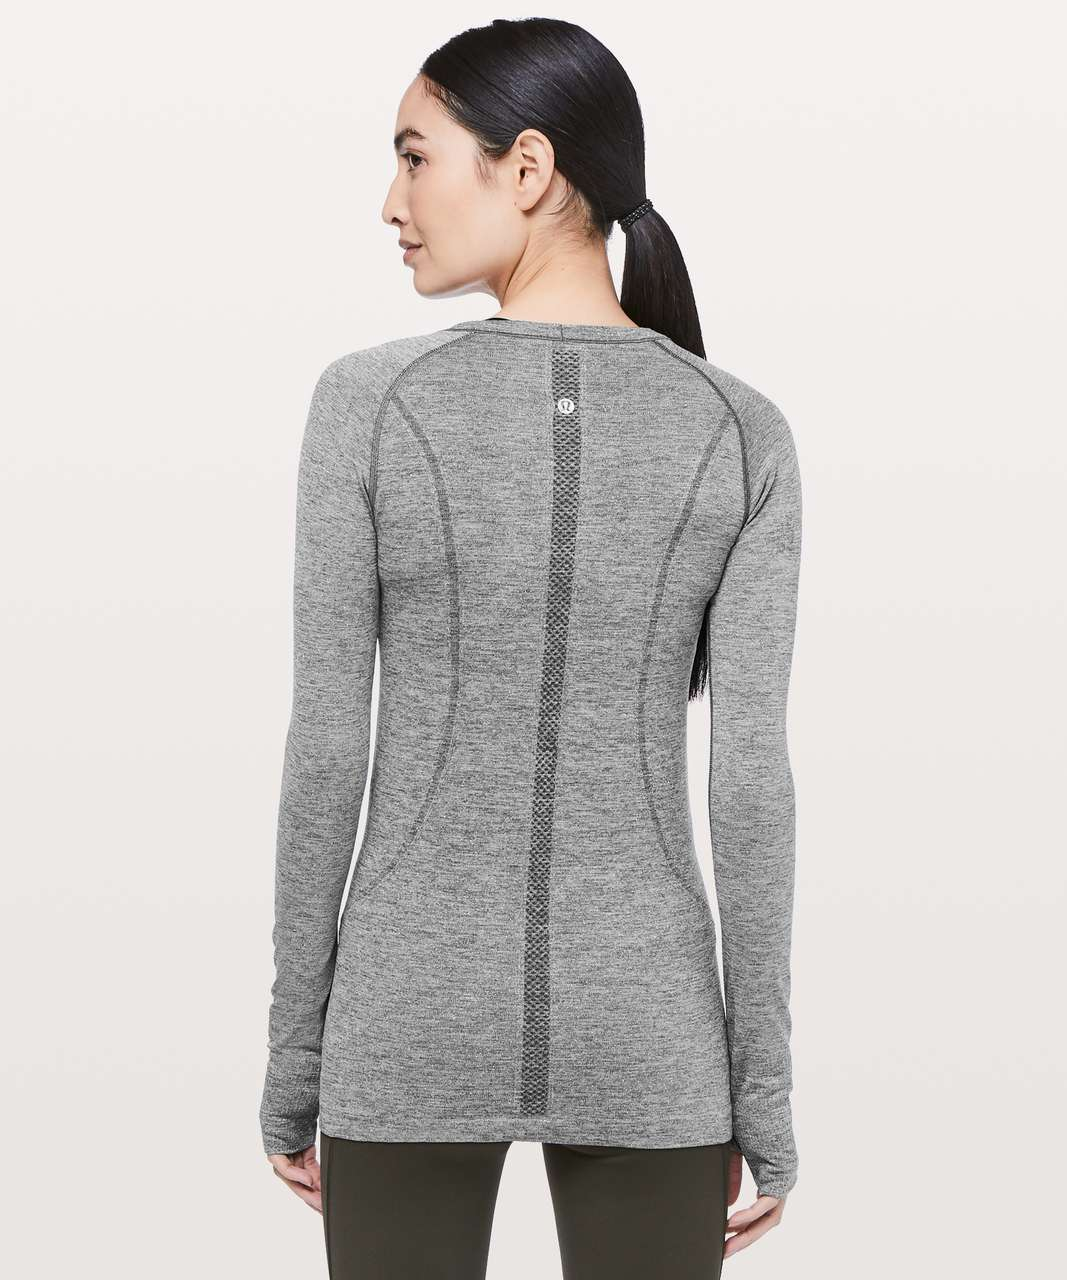 Lululemon Swiftly Tech Long Sleeve Crew *Sparkle - Black / White / Silver